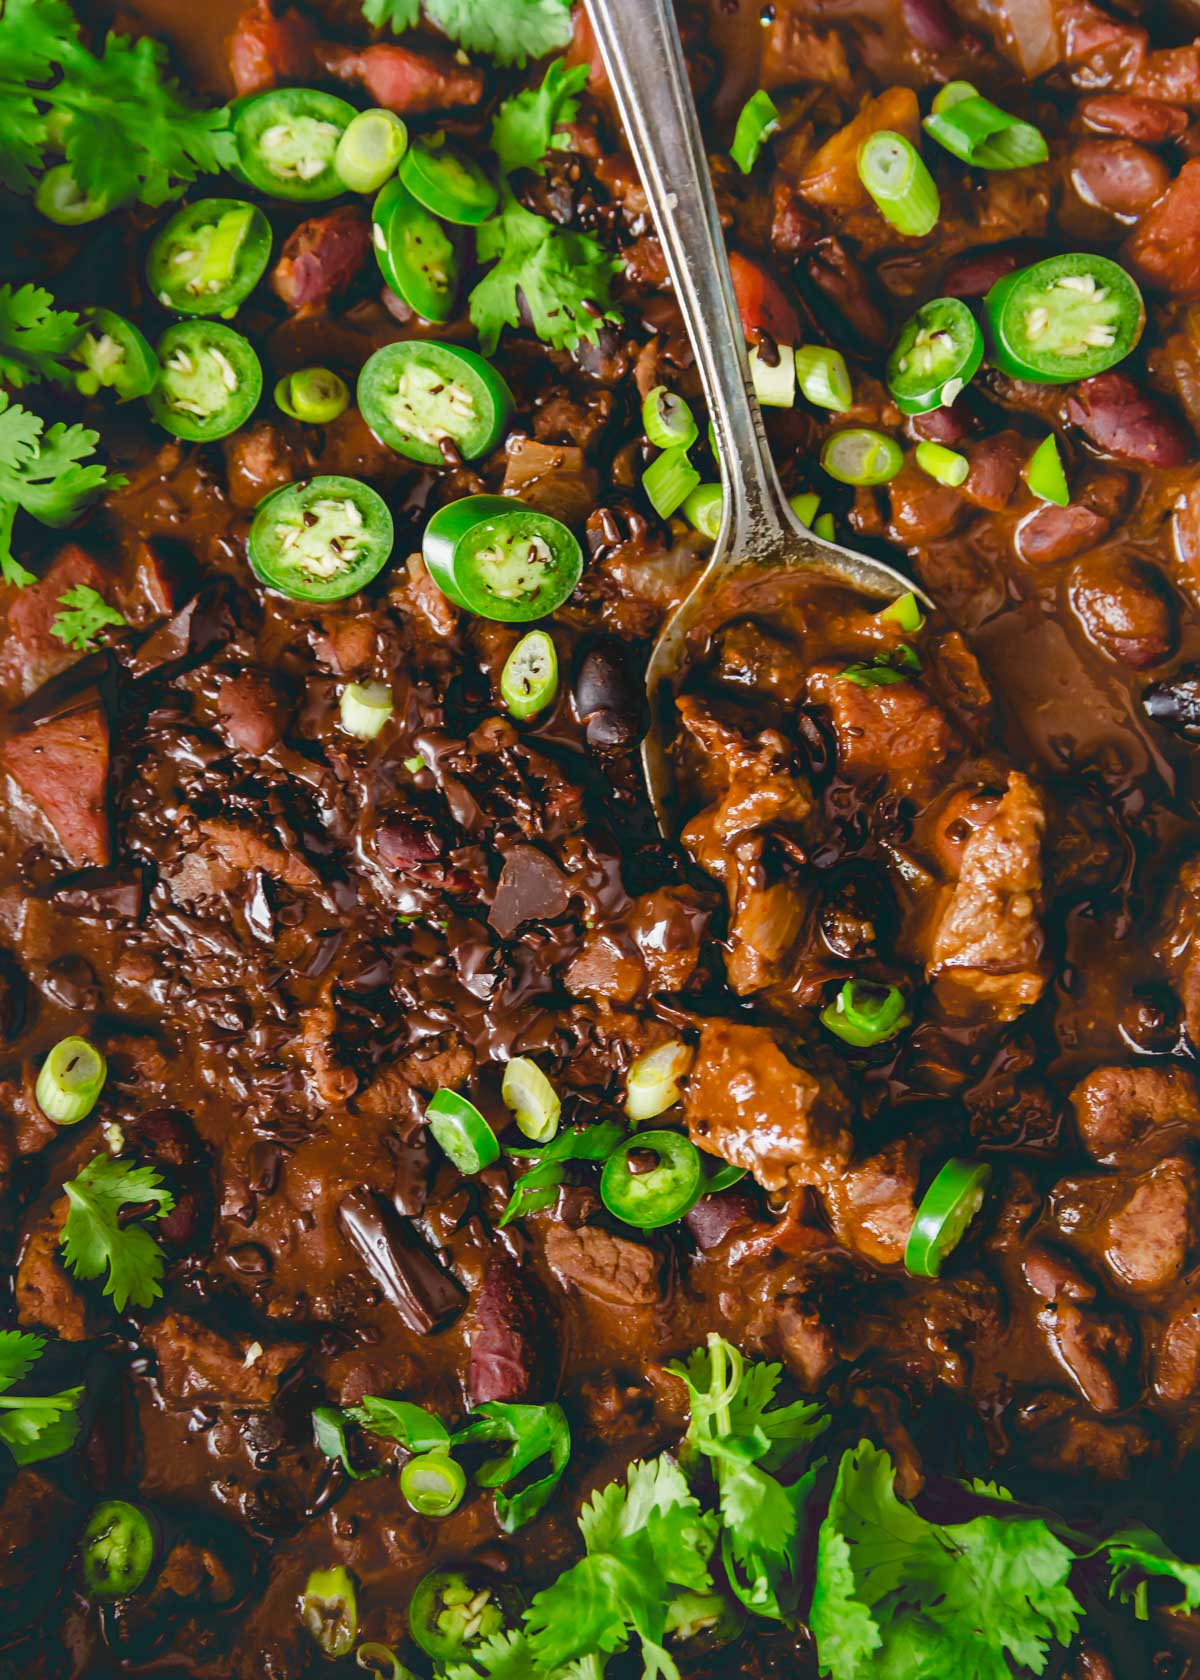 Decadent lamb chili made with cocoa powder and bittersweet chocolate with smoky spices and a mixture of beans.